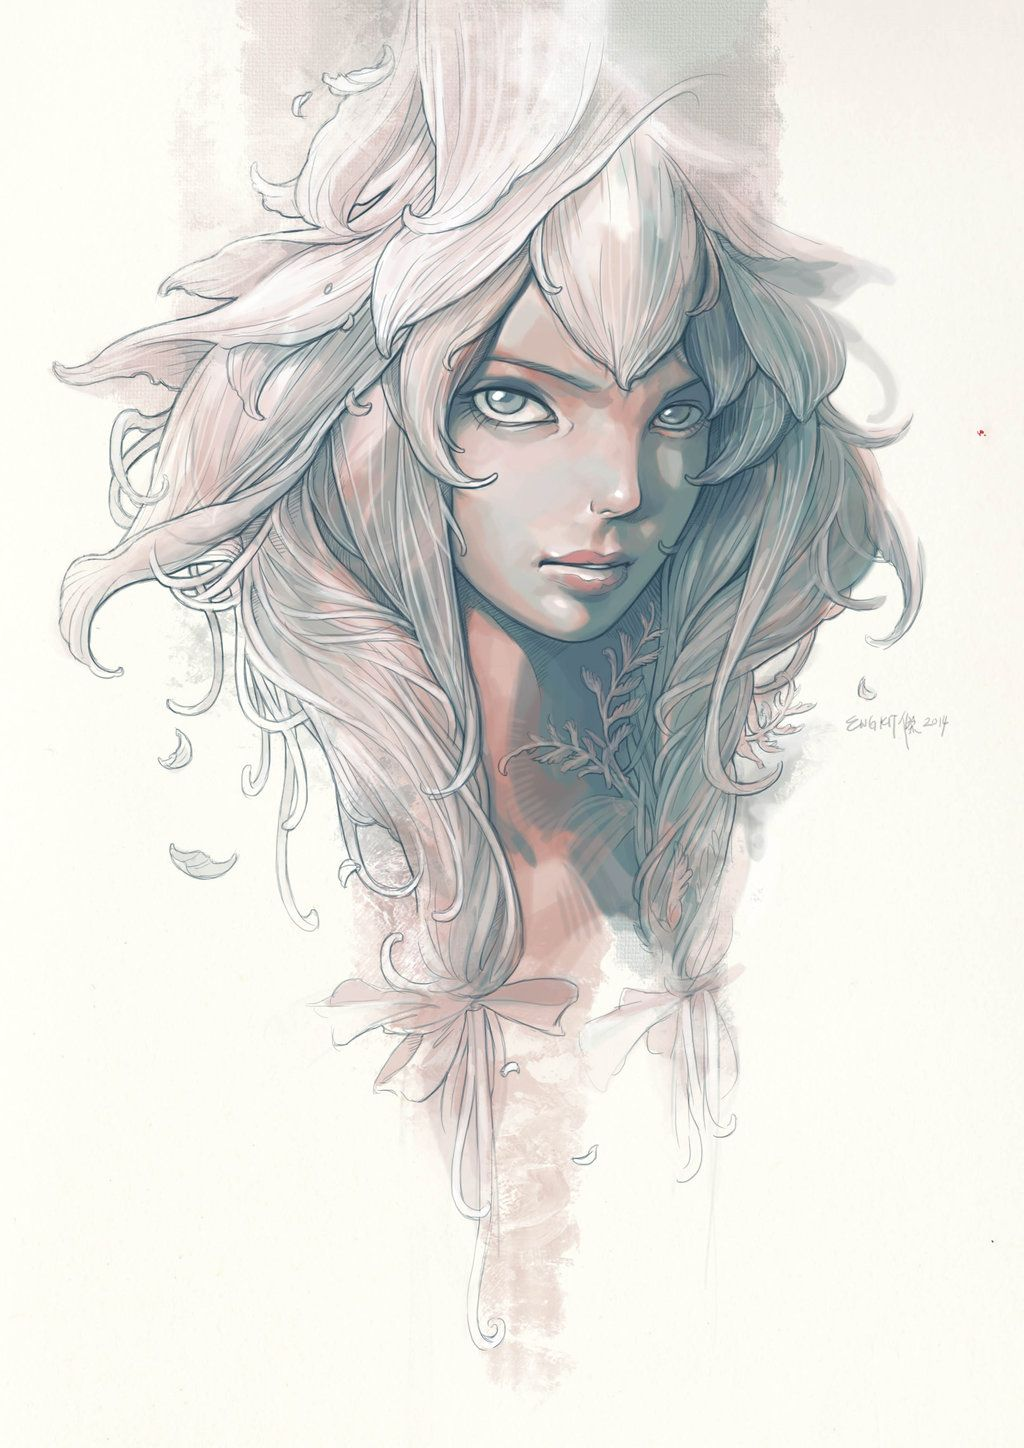 The flower fairy by engkit | Flower fairies, Illustrations ...